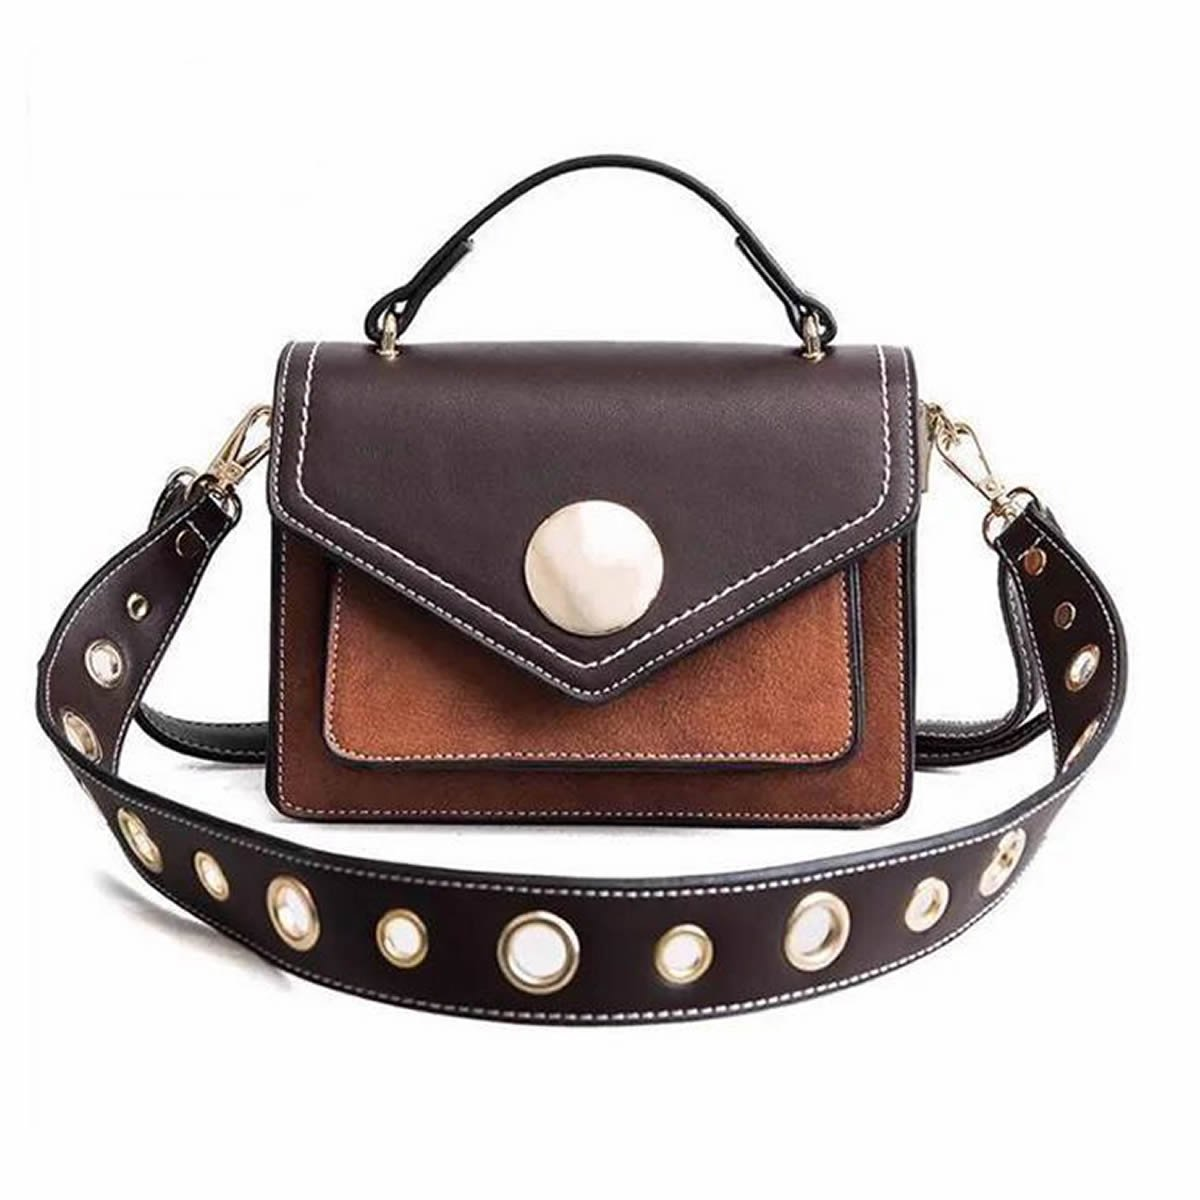 Crossbody Shoulder Bag Mini Shoulder Bag Women Girls England Style Brown